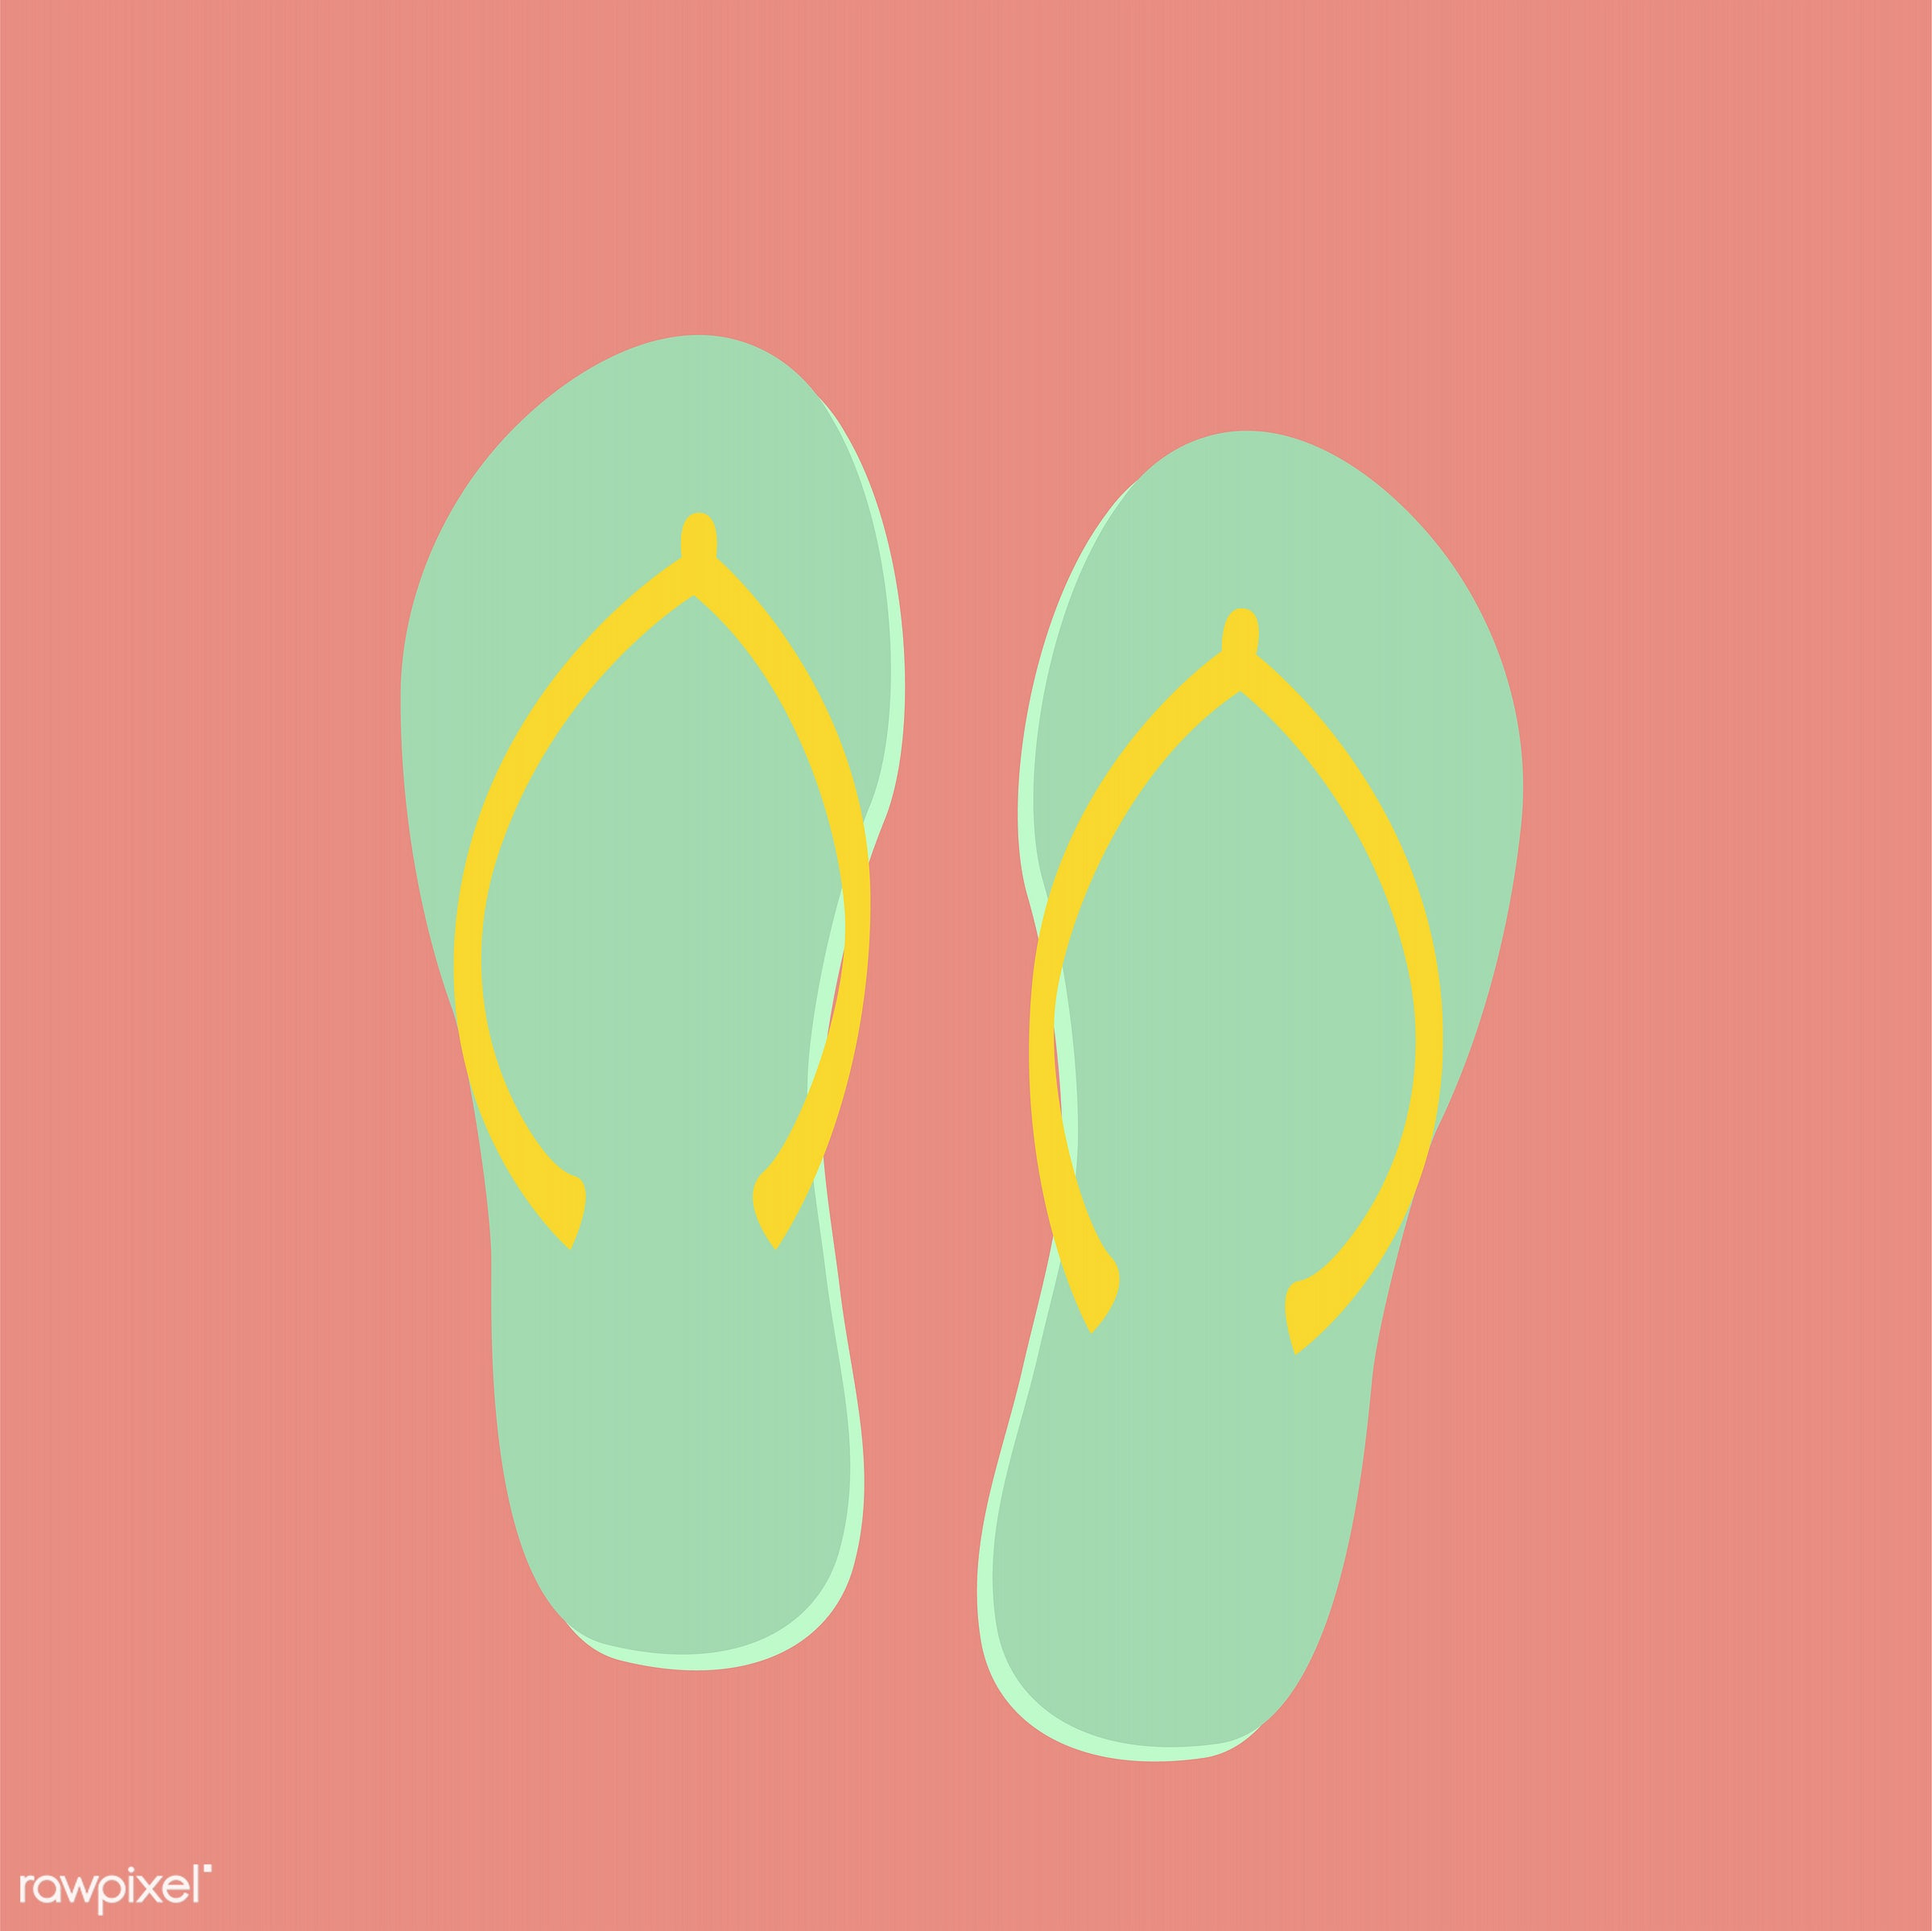 vector, illustration, graphic, cute, sweet, girly, pastel, flipflops, shoes, beach